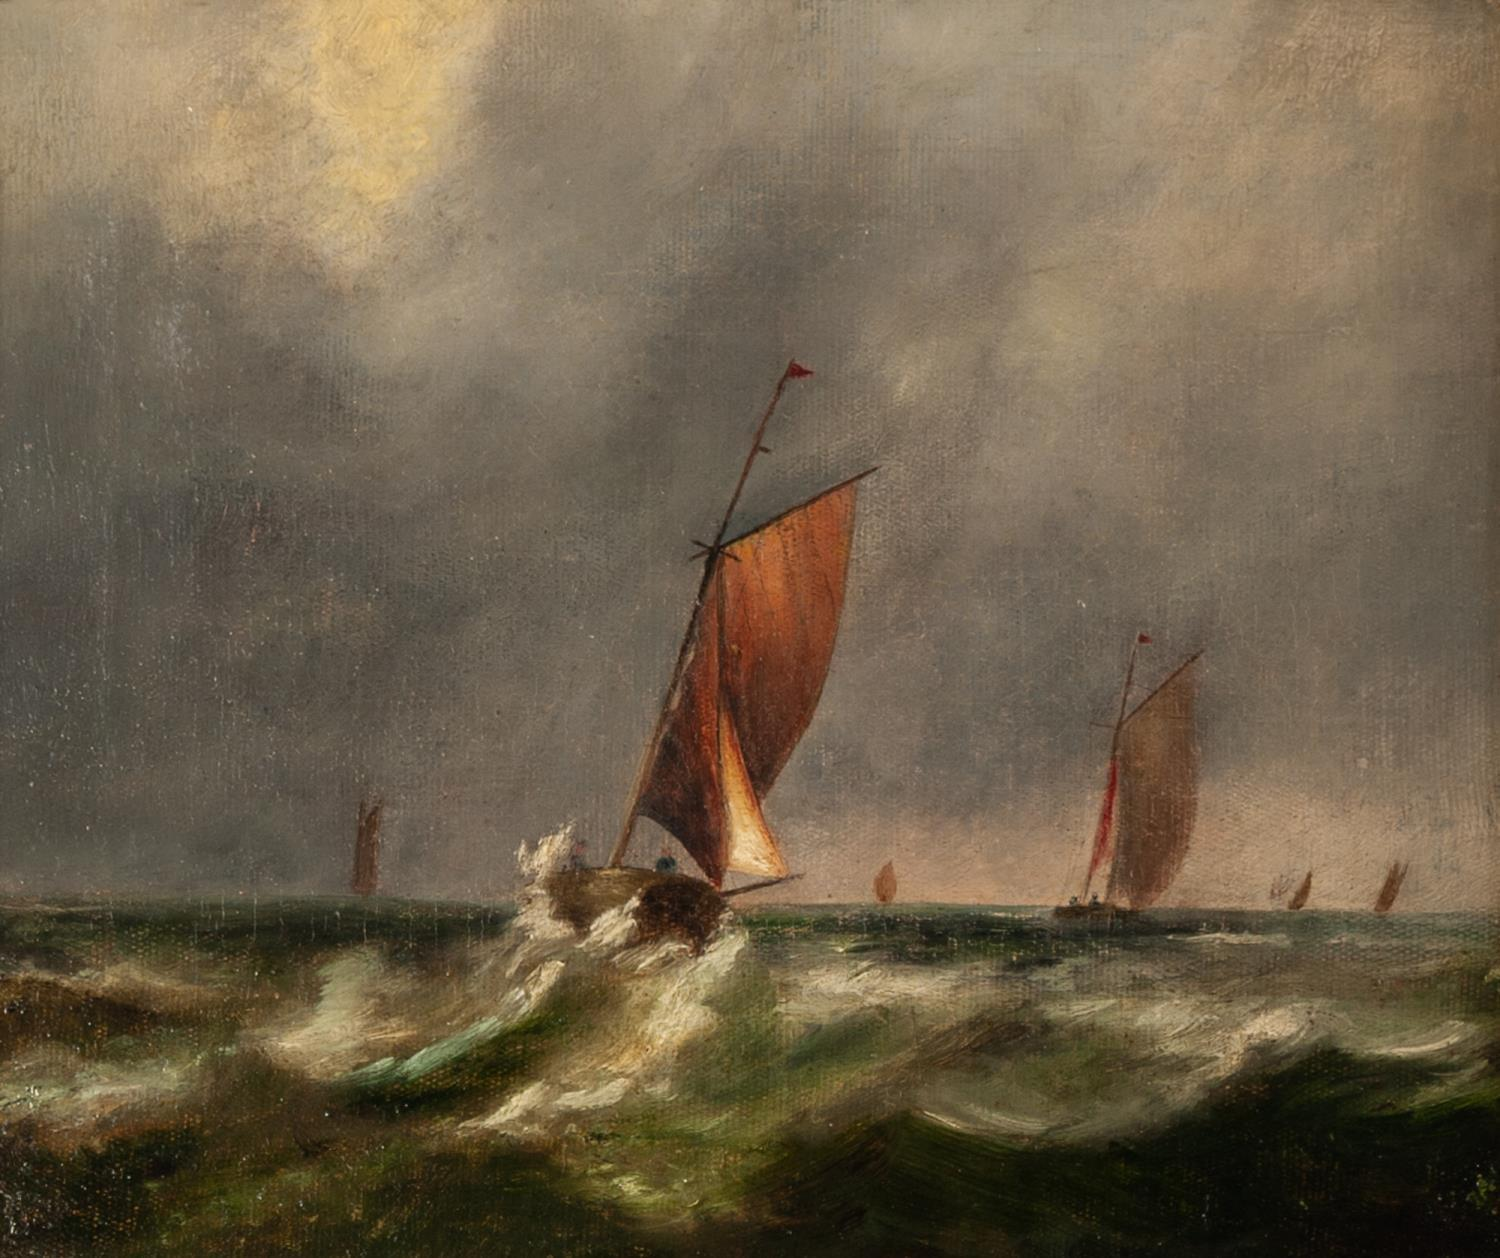 Lot 264 - UNATTRIBUTED (NINETEENTH CENTURY ENGLISH SCHOOL) OIL PAINTING ON CANVAS Small sailing vessels in